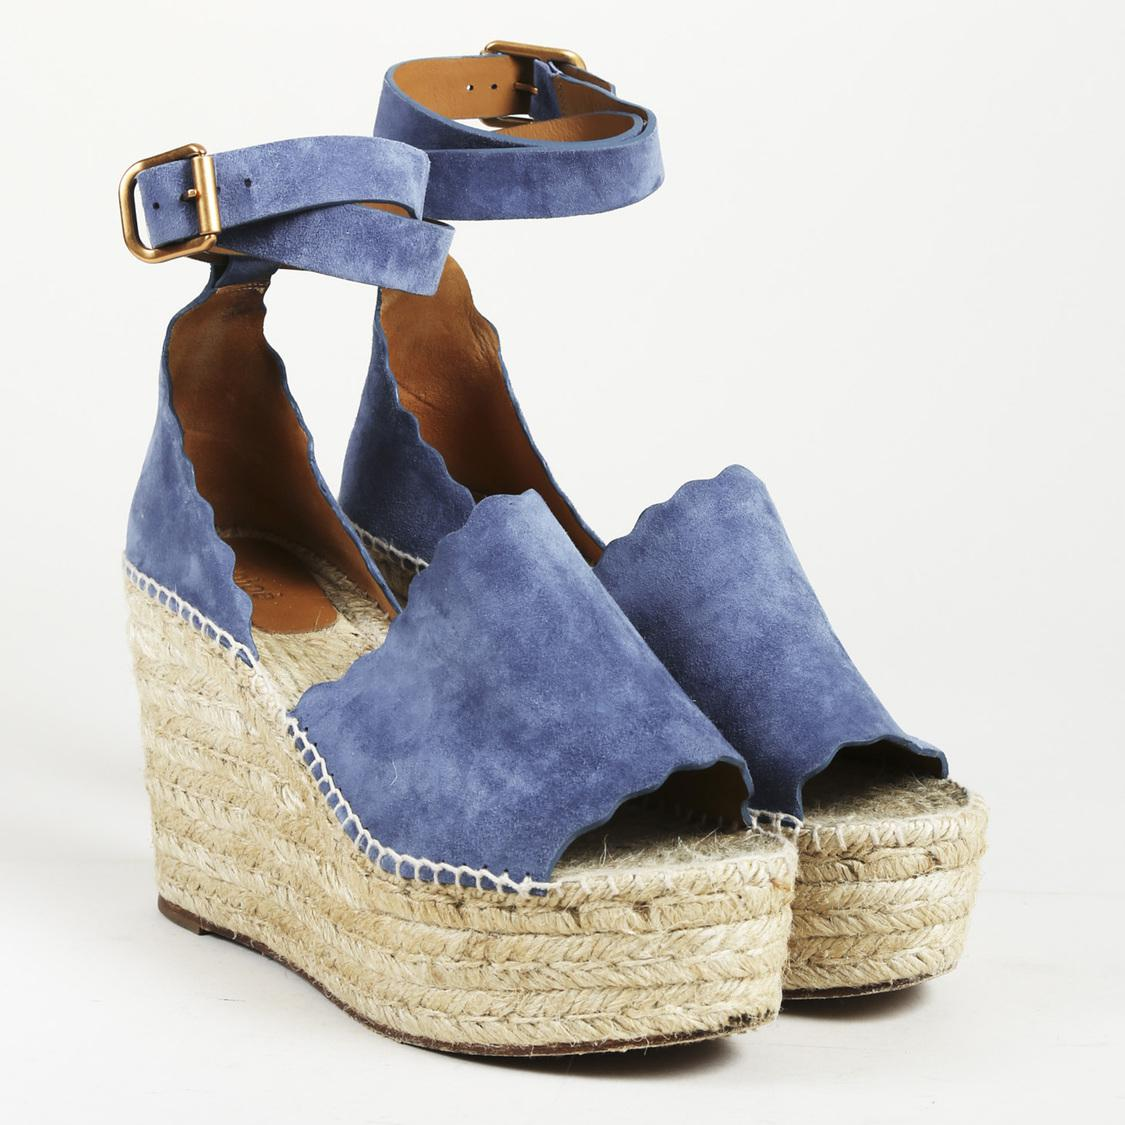 Lyst - Chloé Suede Espadrille Wedge Sandals in Blue